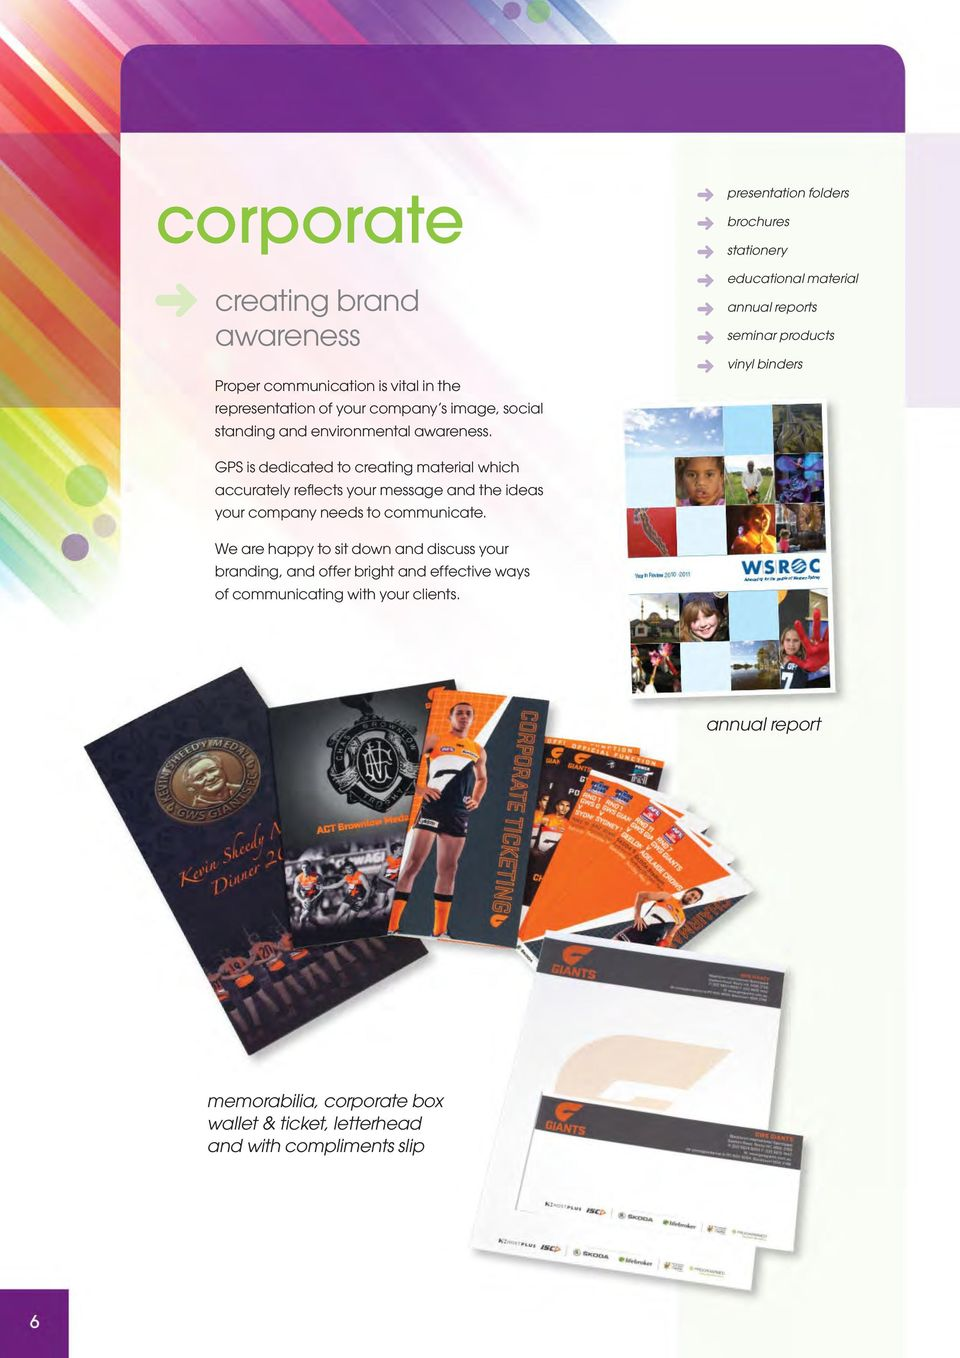 presentation folders brochures stationery educational material annual reports seminar products vinyl binders GPS is dedicated to creating material which